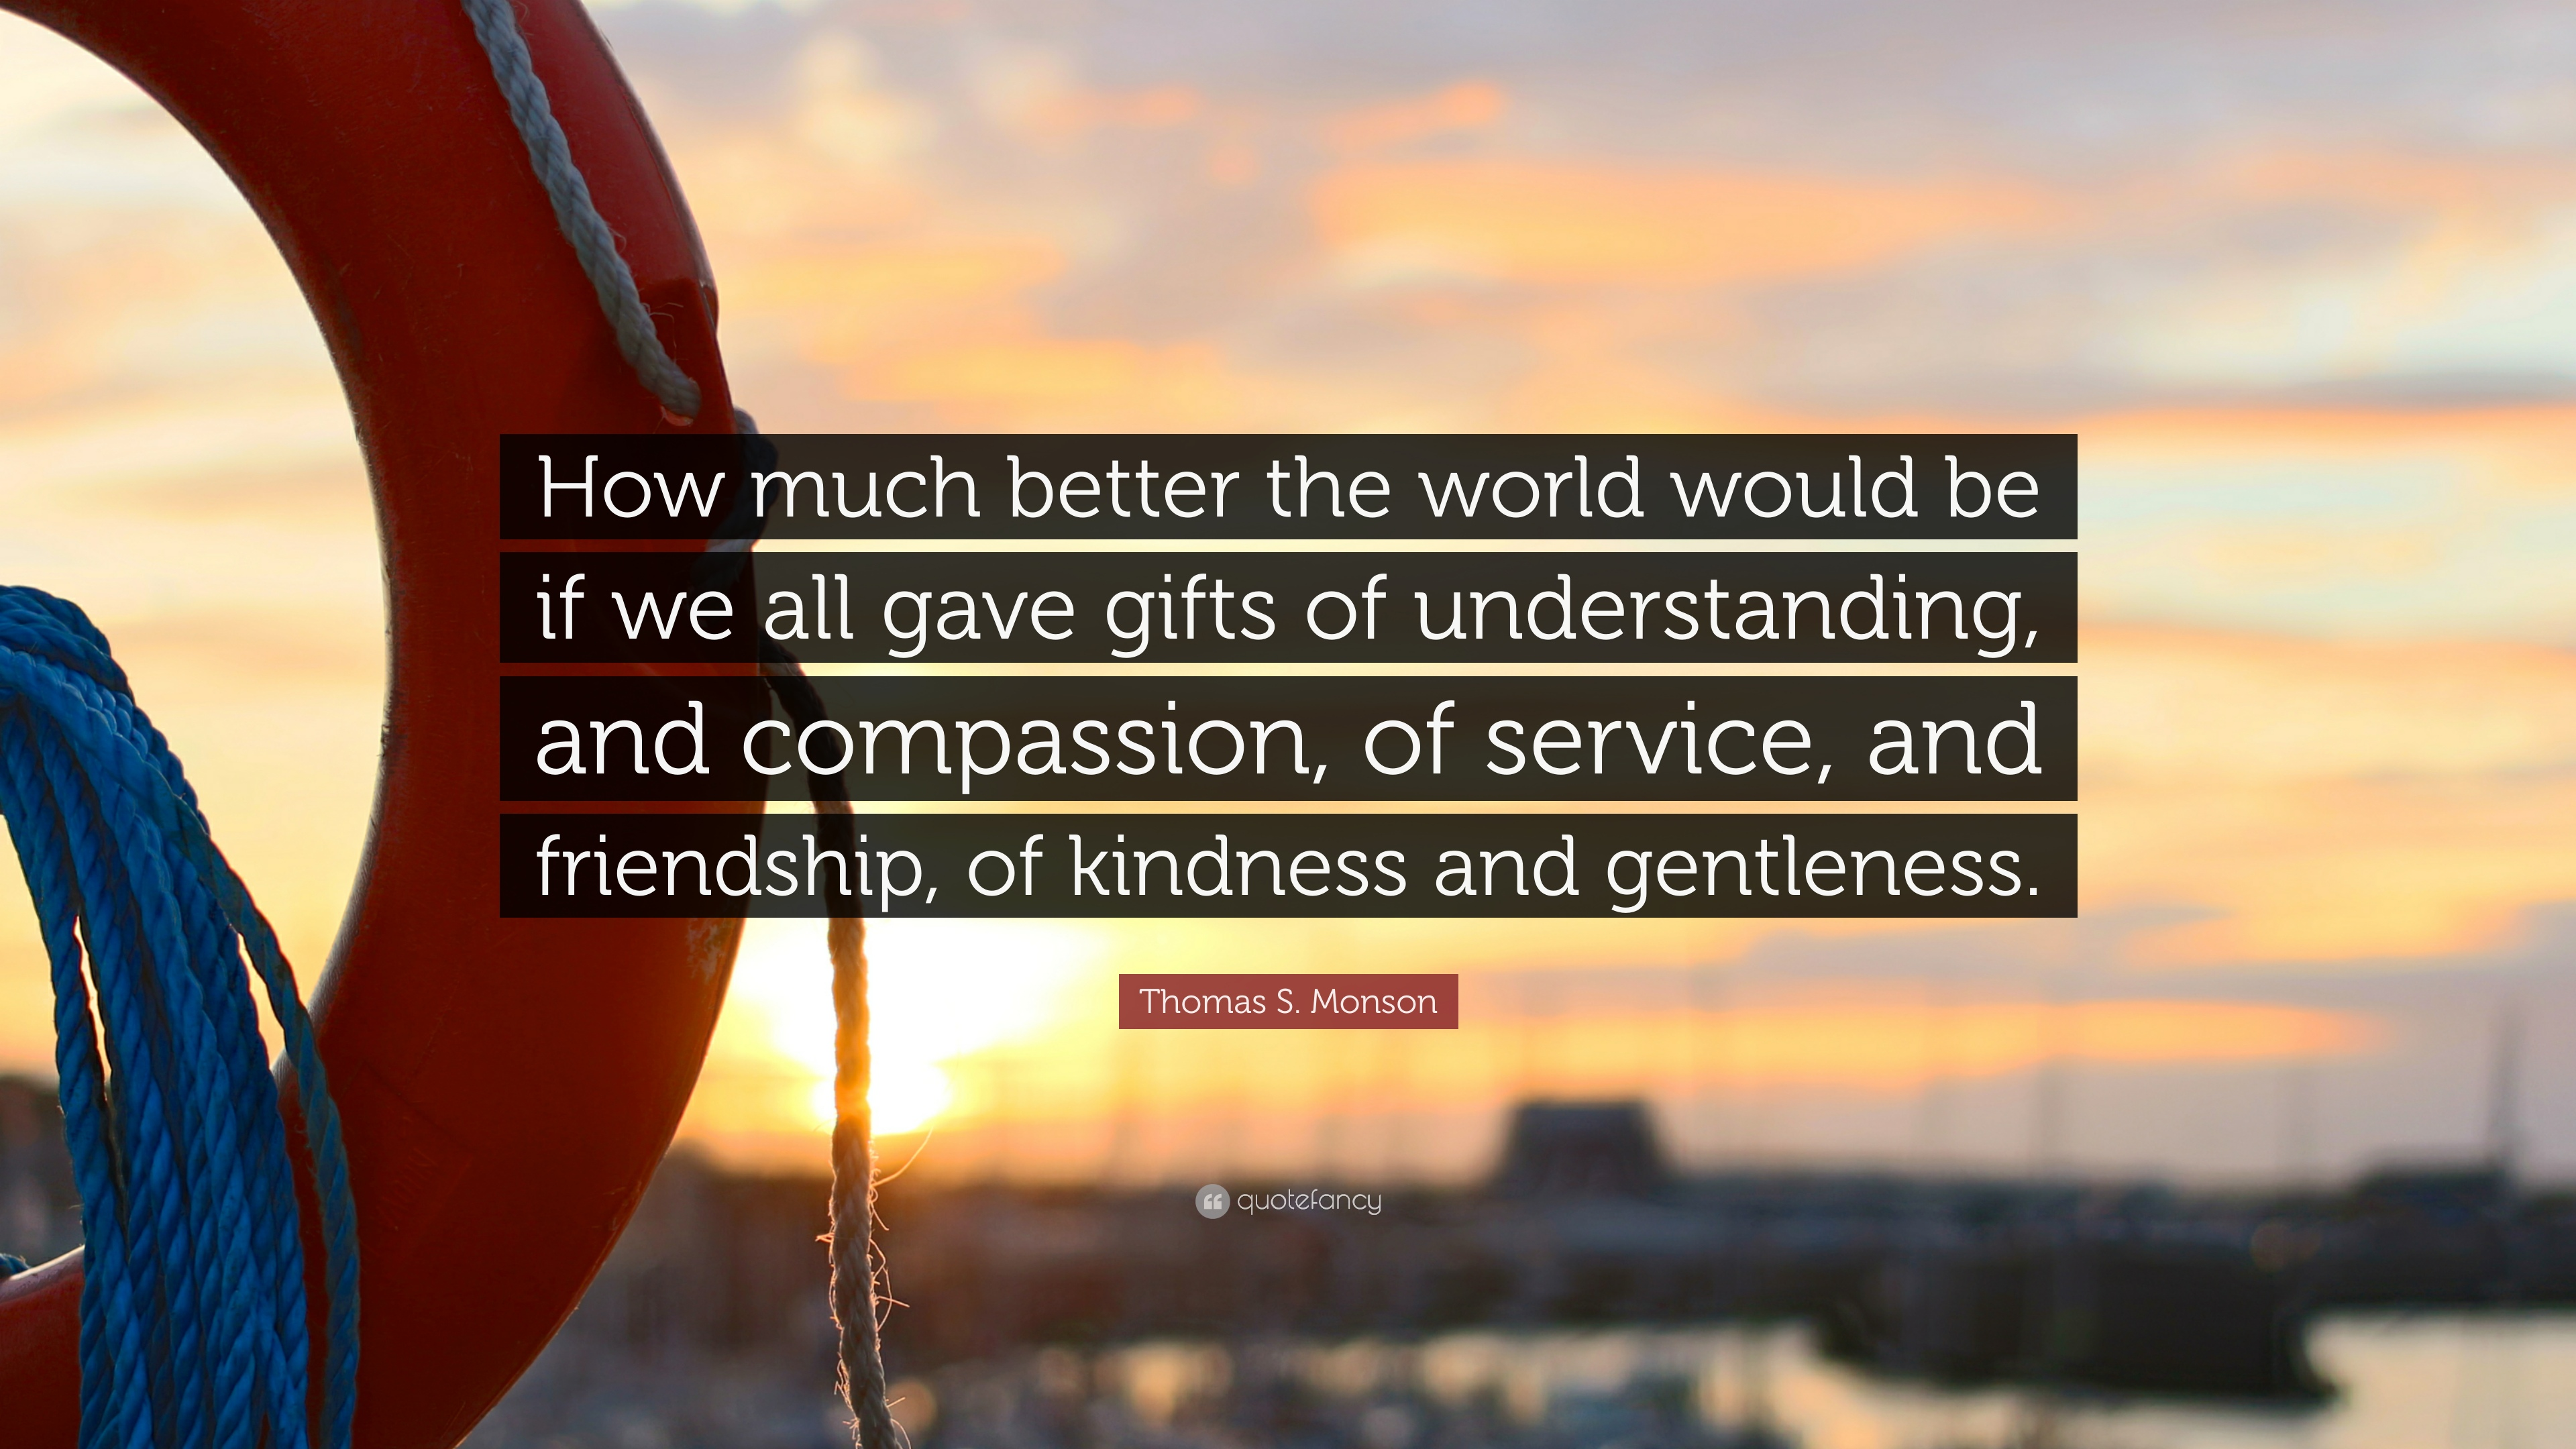 Thomas S Monson Quote How Much Better The World Would Be If We